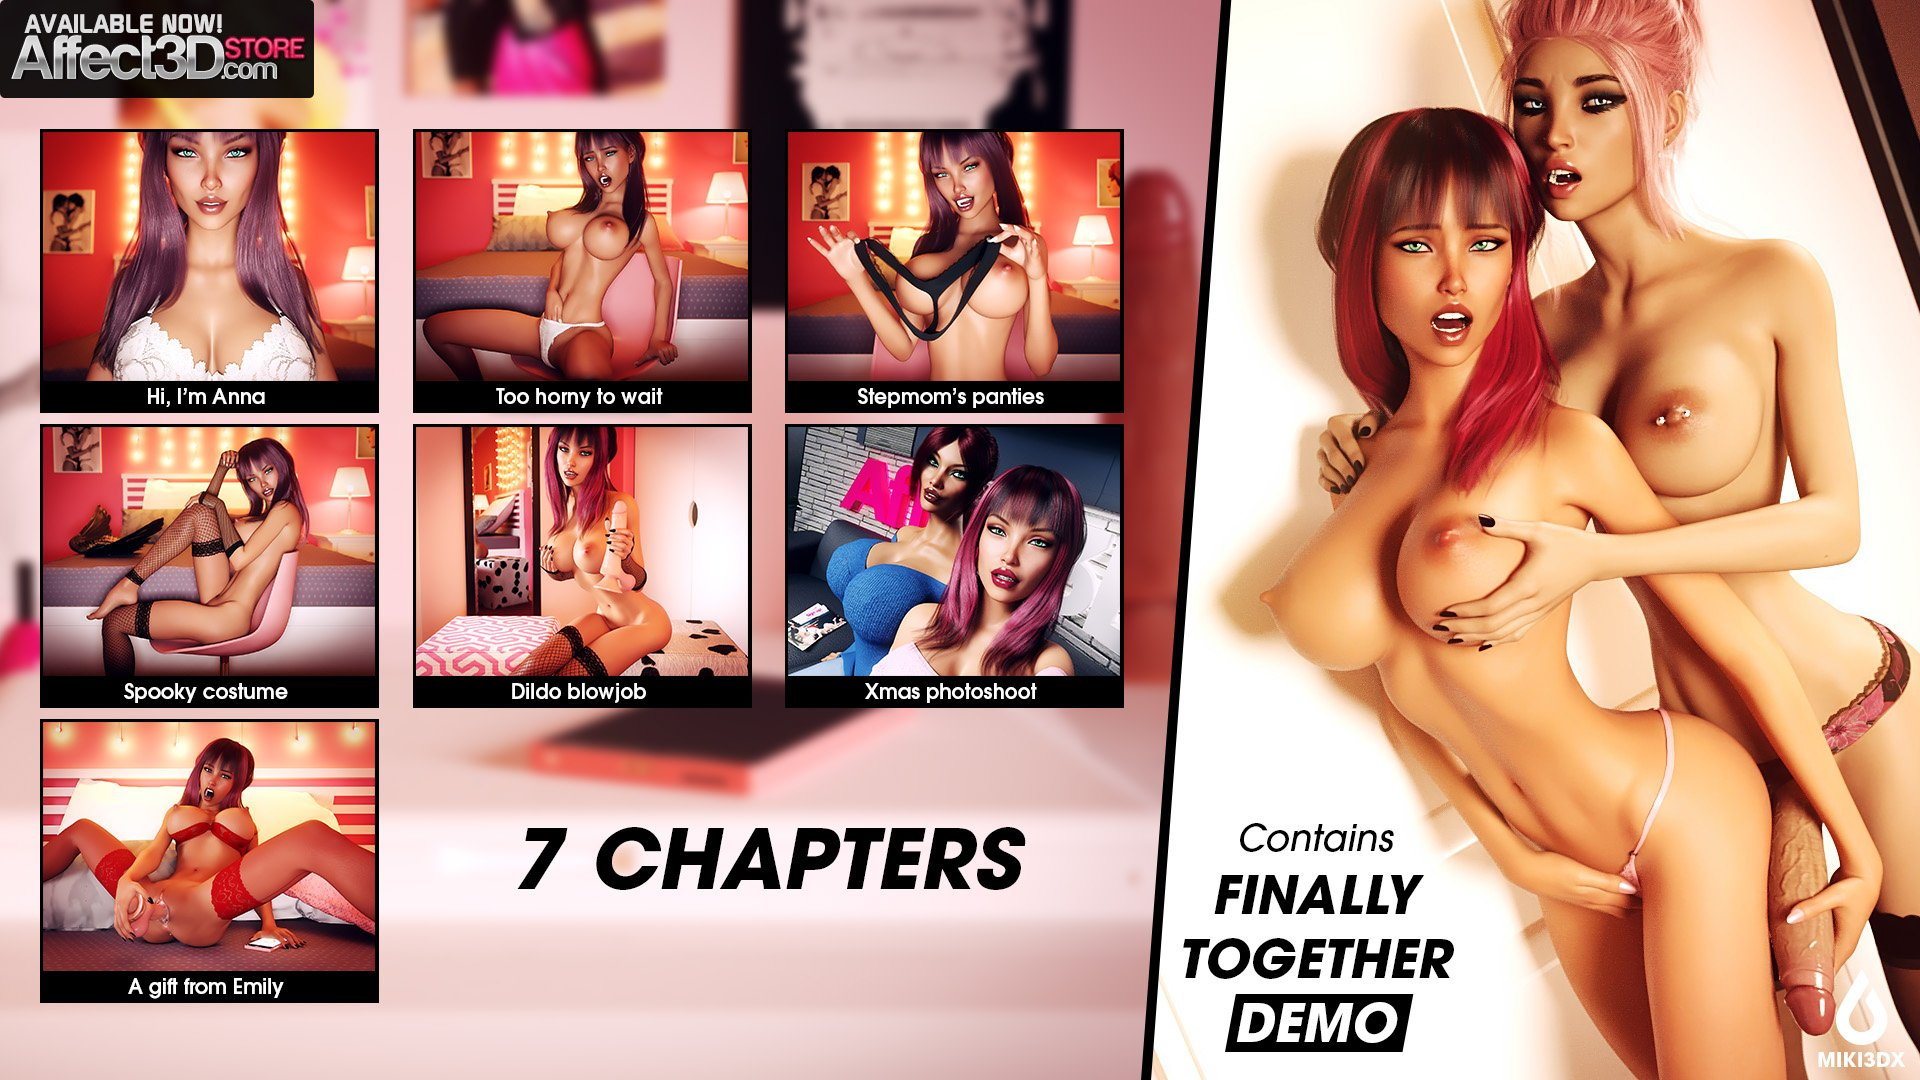 New Release from Miki3DX: Finally Together plus FREE visual novel, Anna